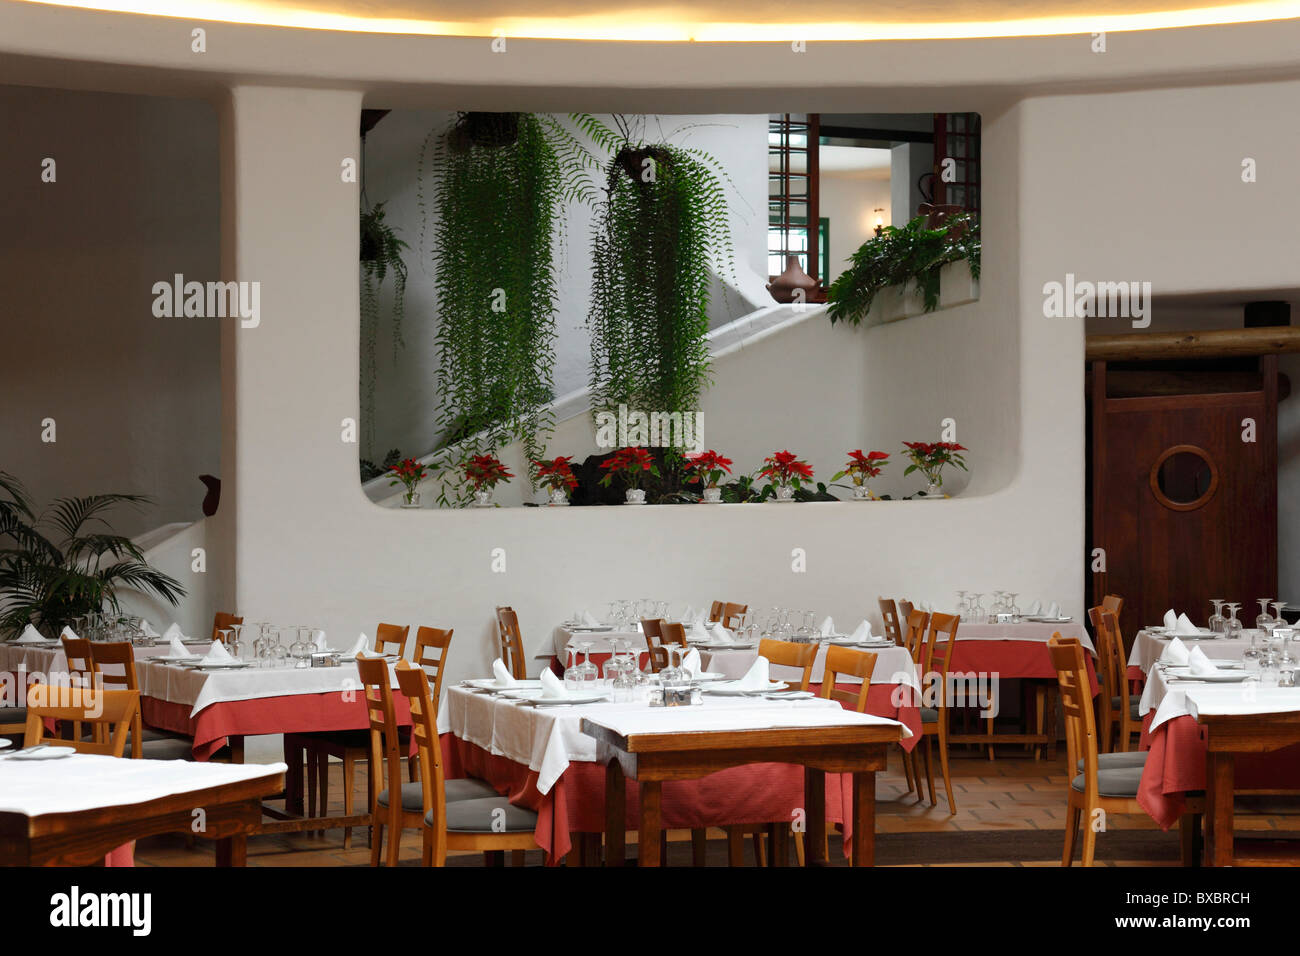 Restaurant Campesino in Monumento al Campesino, Lanzarote, Canary Islands, Spain, Europe - Stock Image